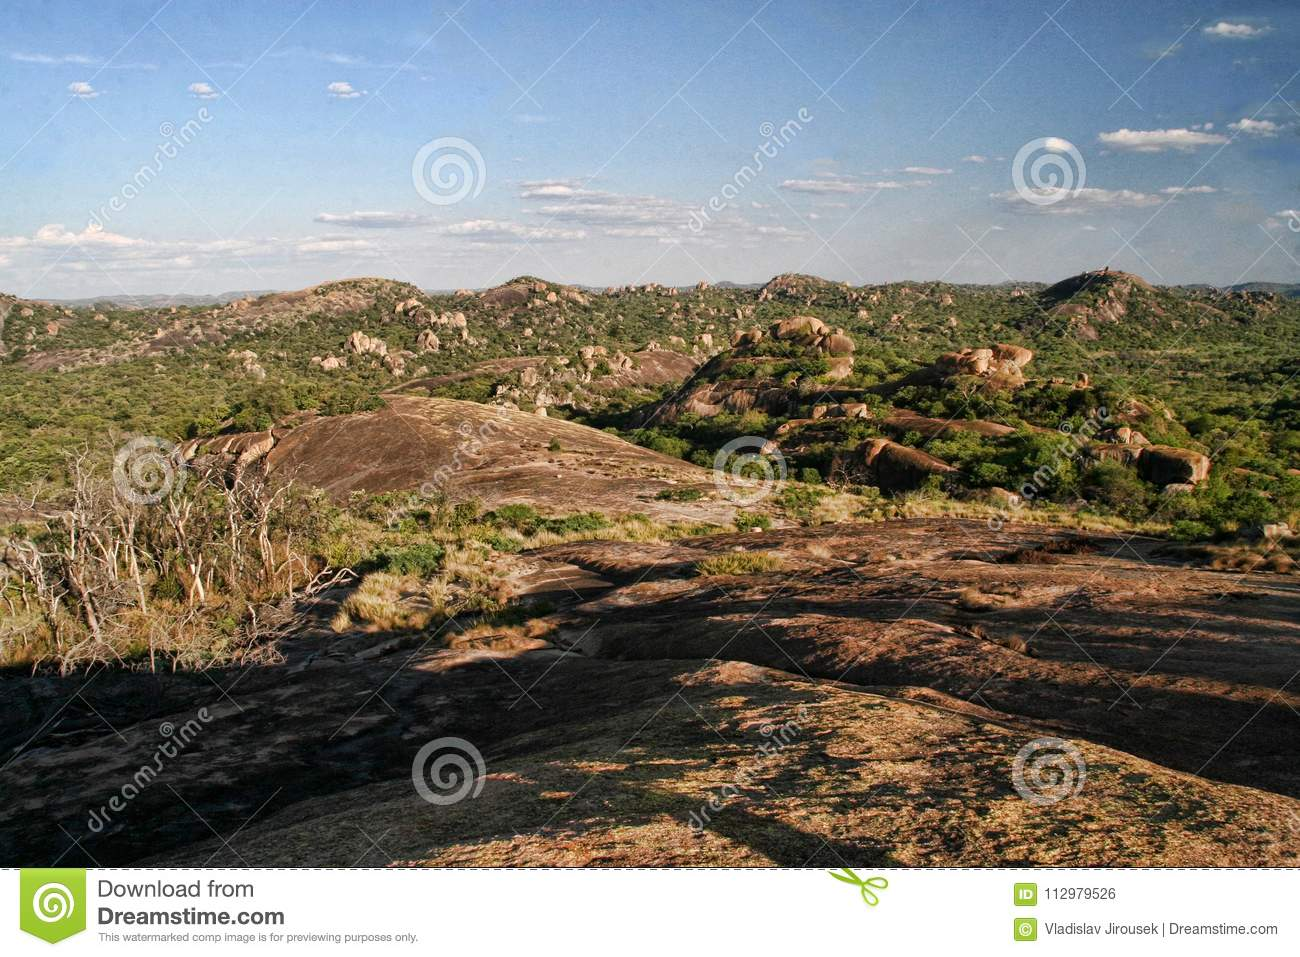 Very special vegetation on the rocks of the Matopos National Park, Zimbabwe